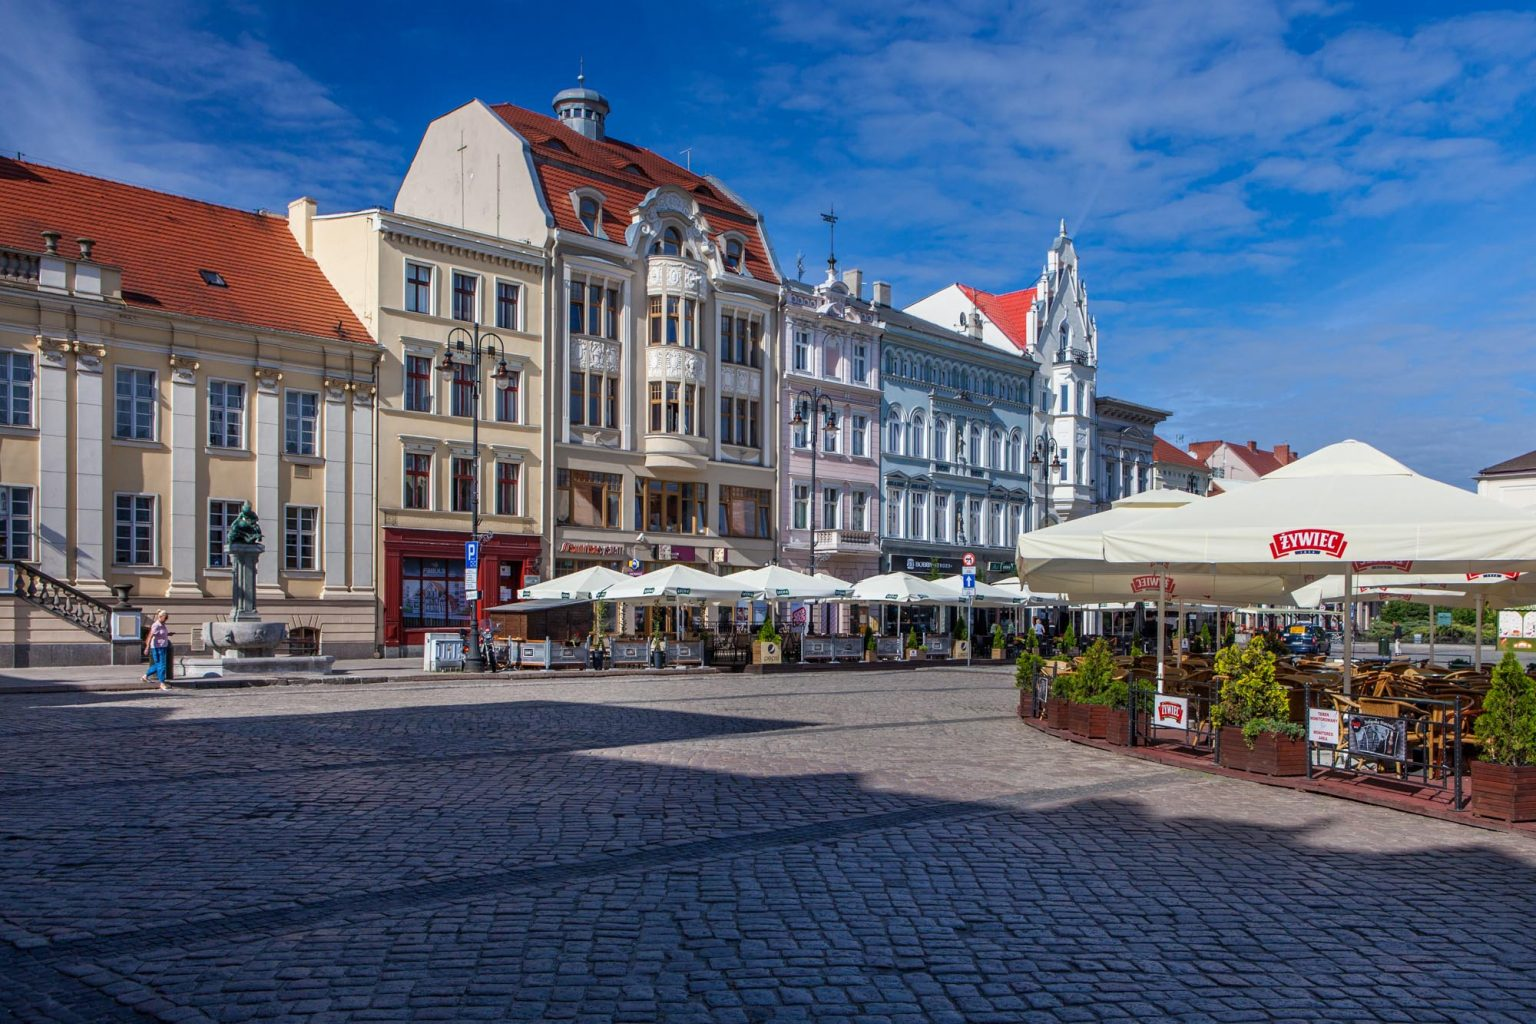 beuatiful tenement houses on the old market square in bydgoszcz